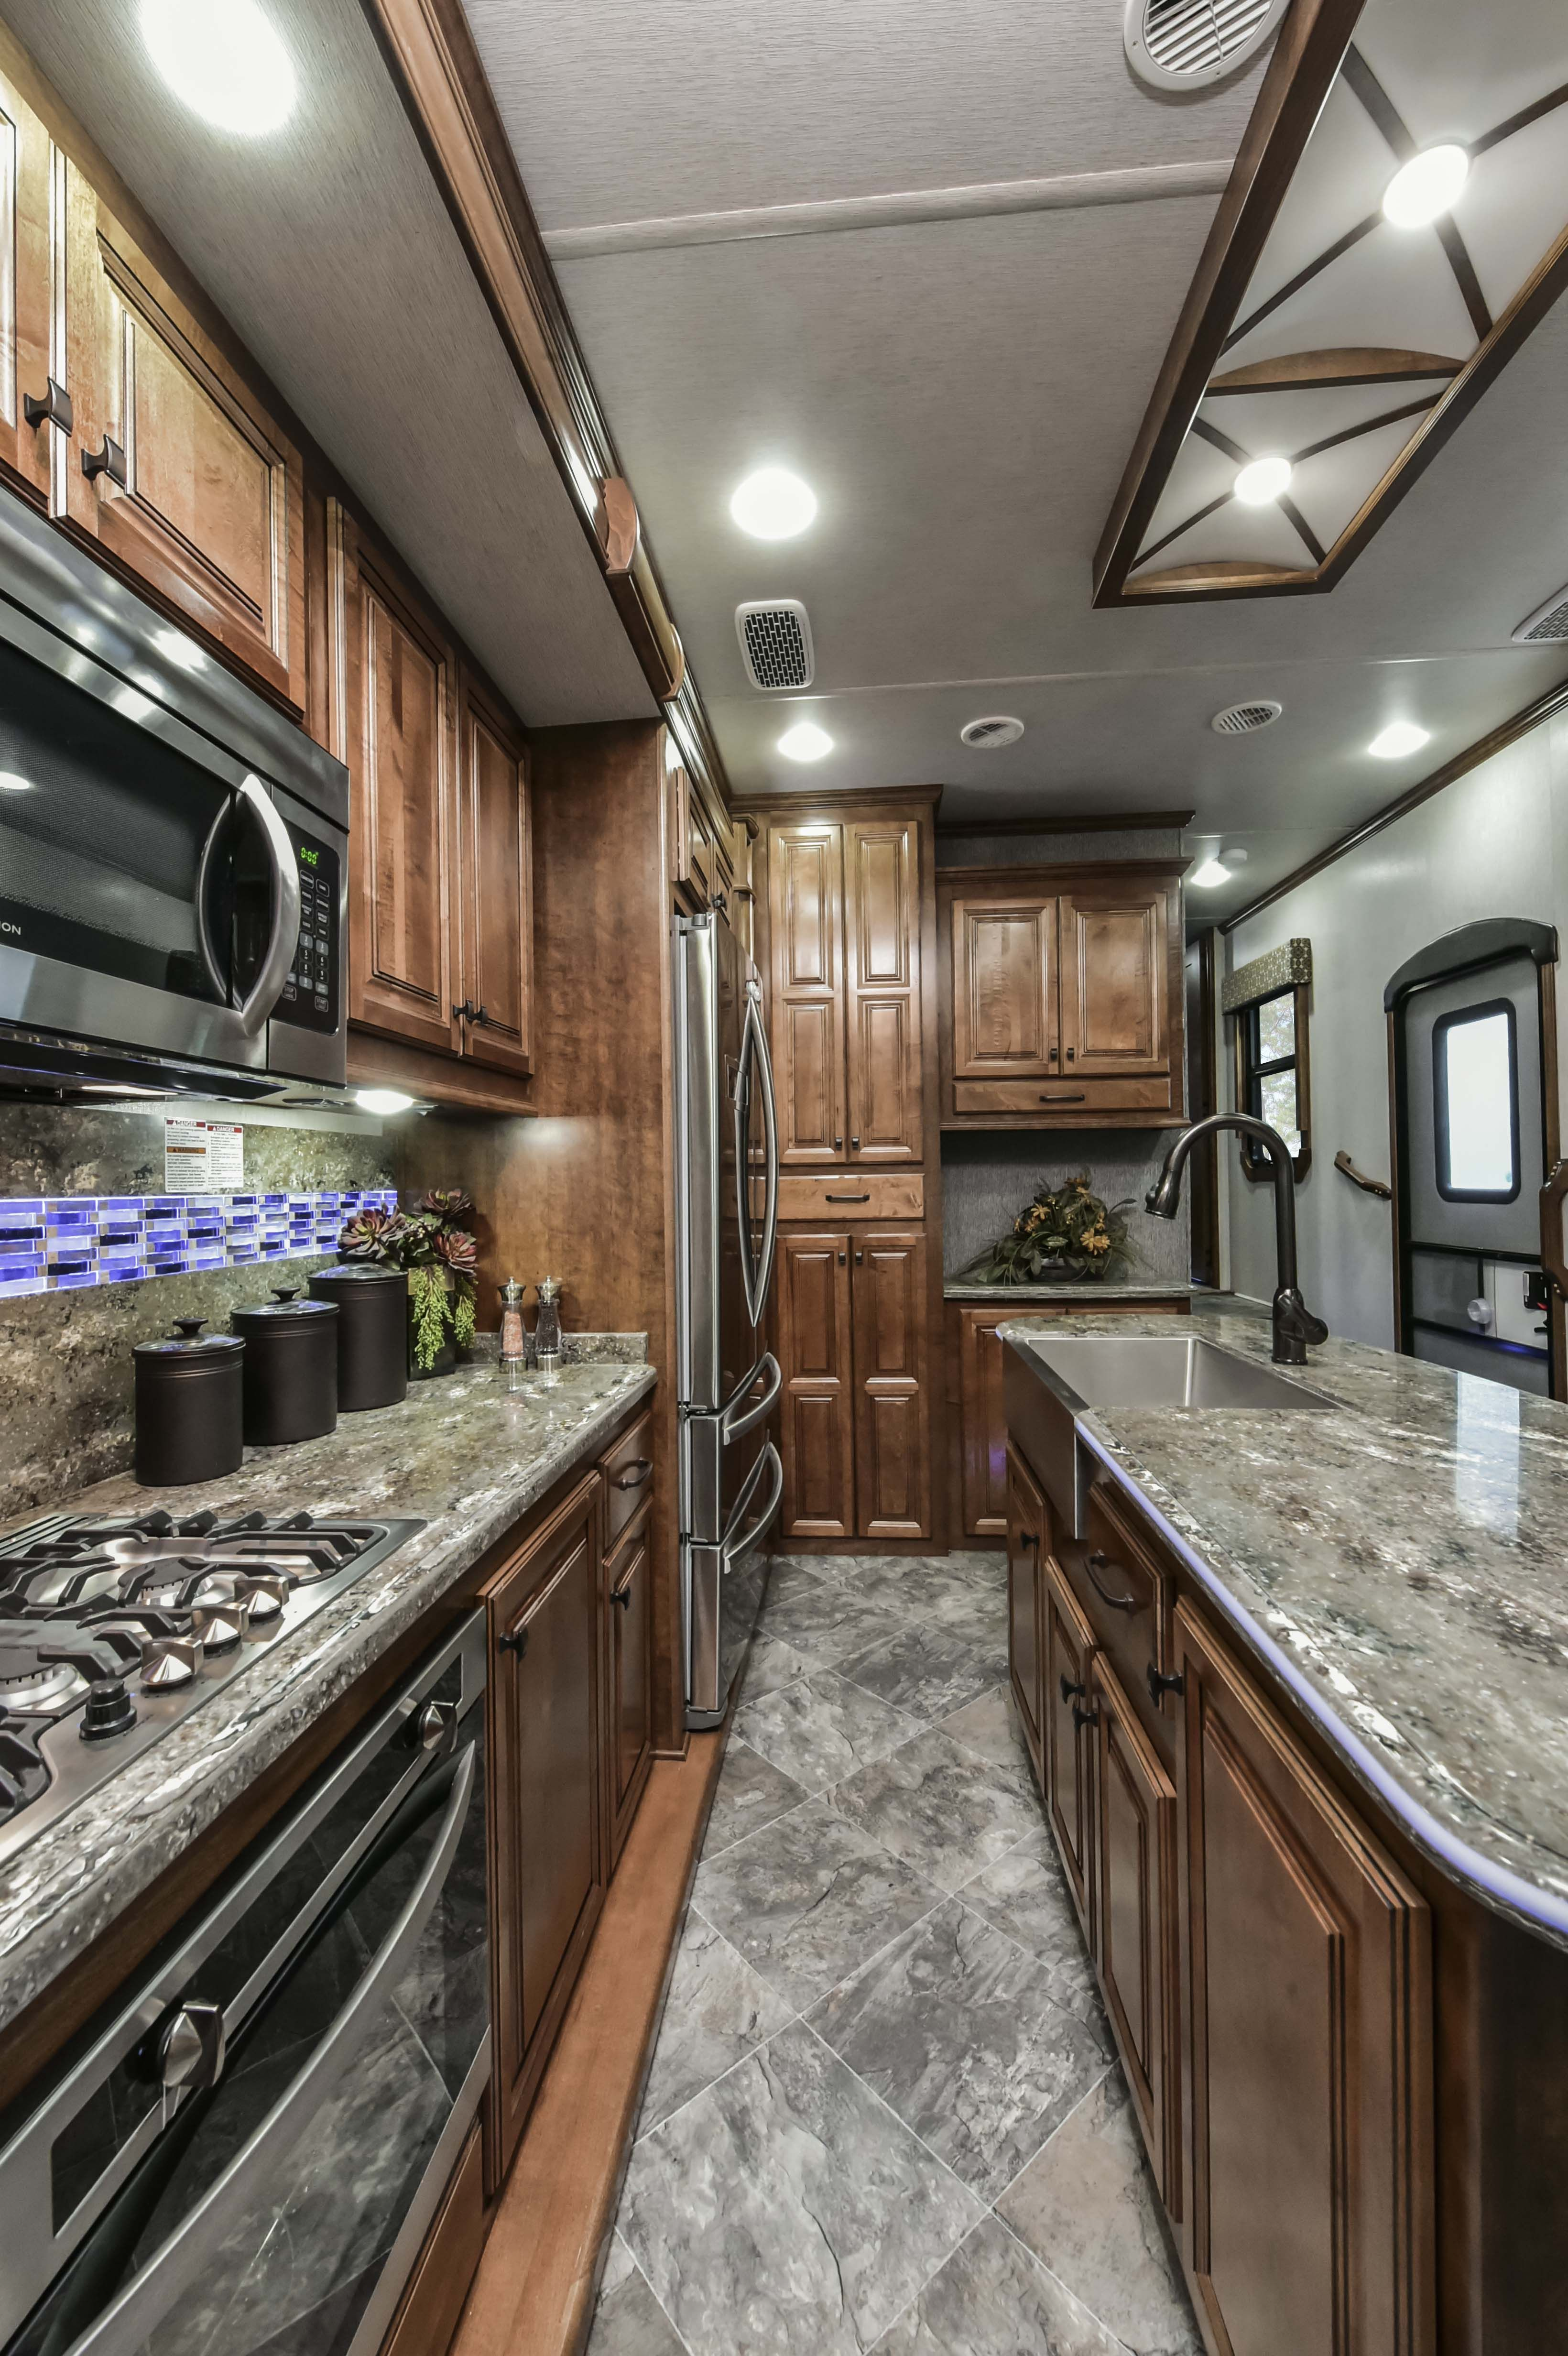 2018 Landmark 365 Charleston Luxury Full Time 5th Wheel Rv Kitchen